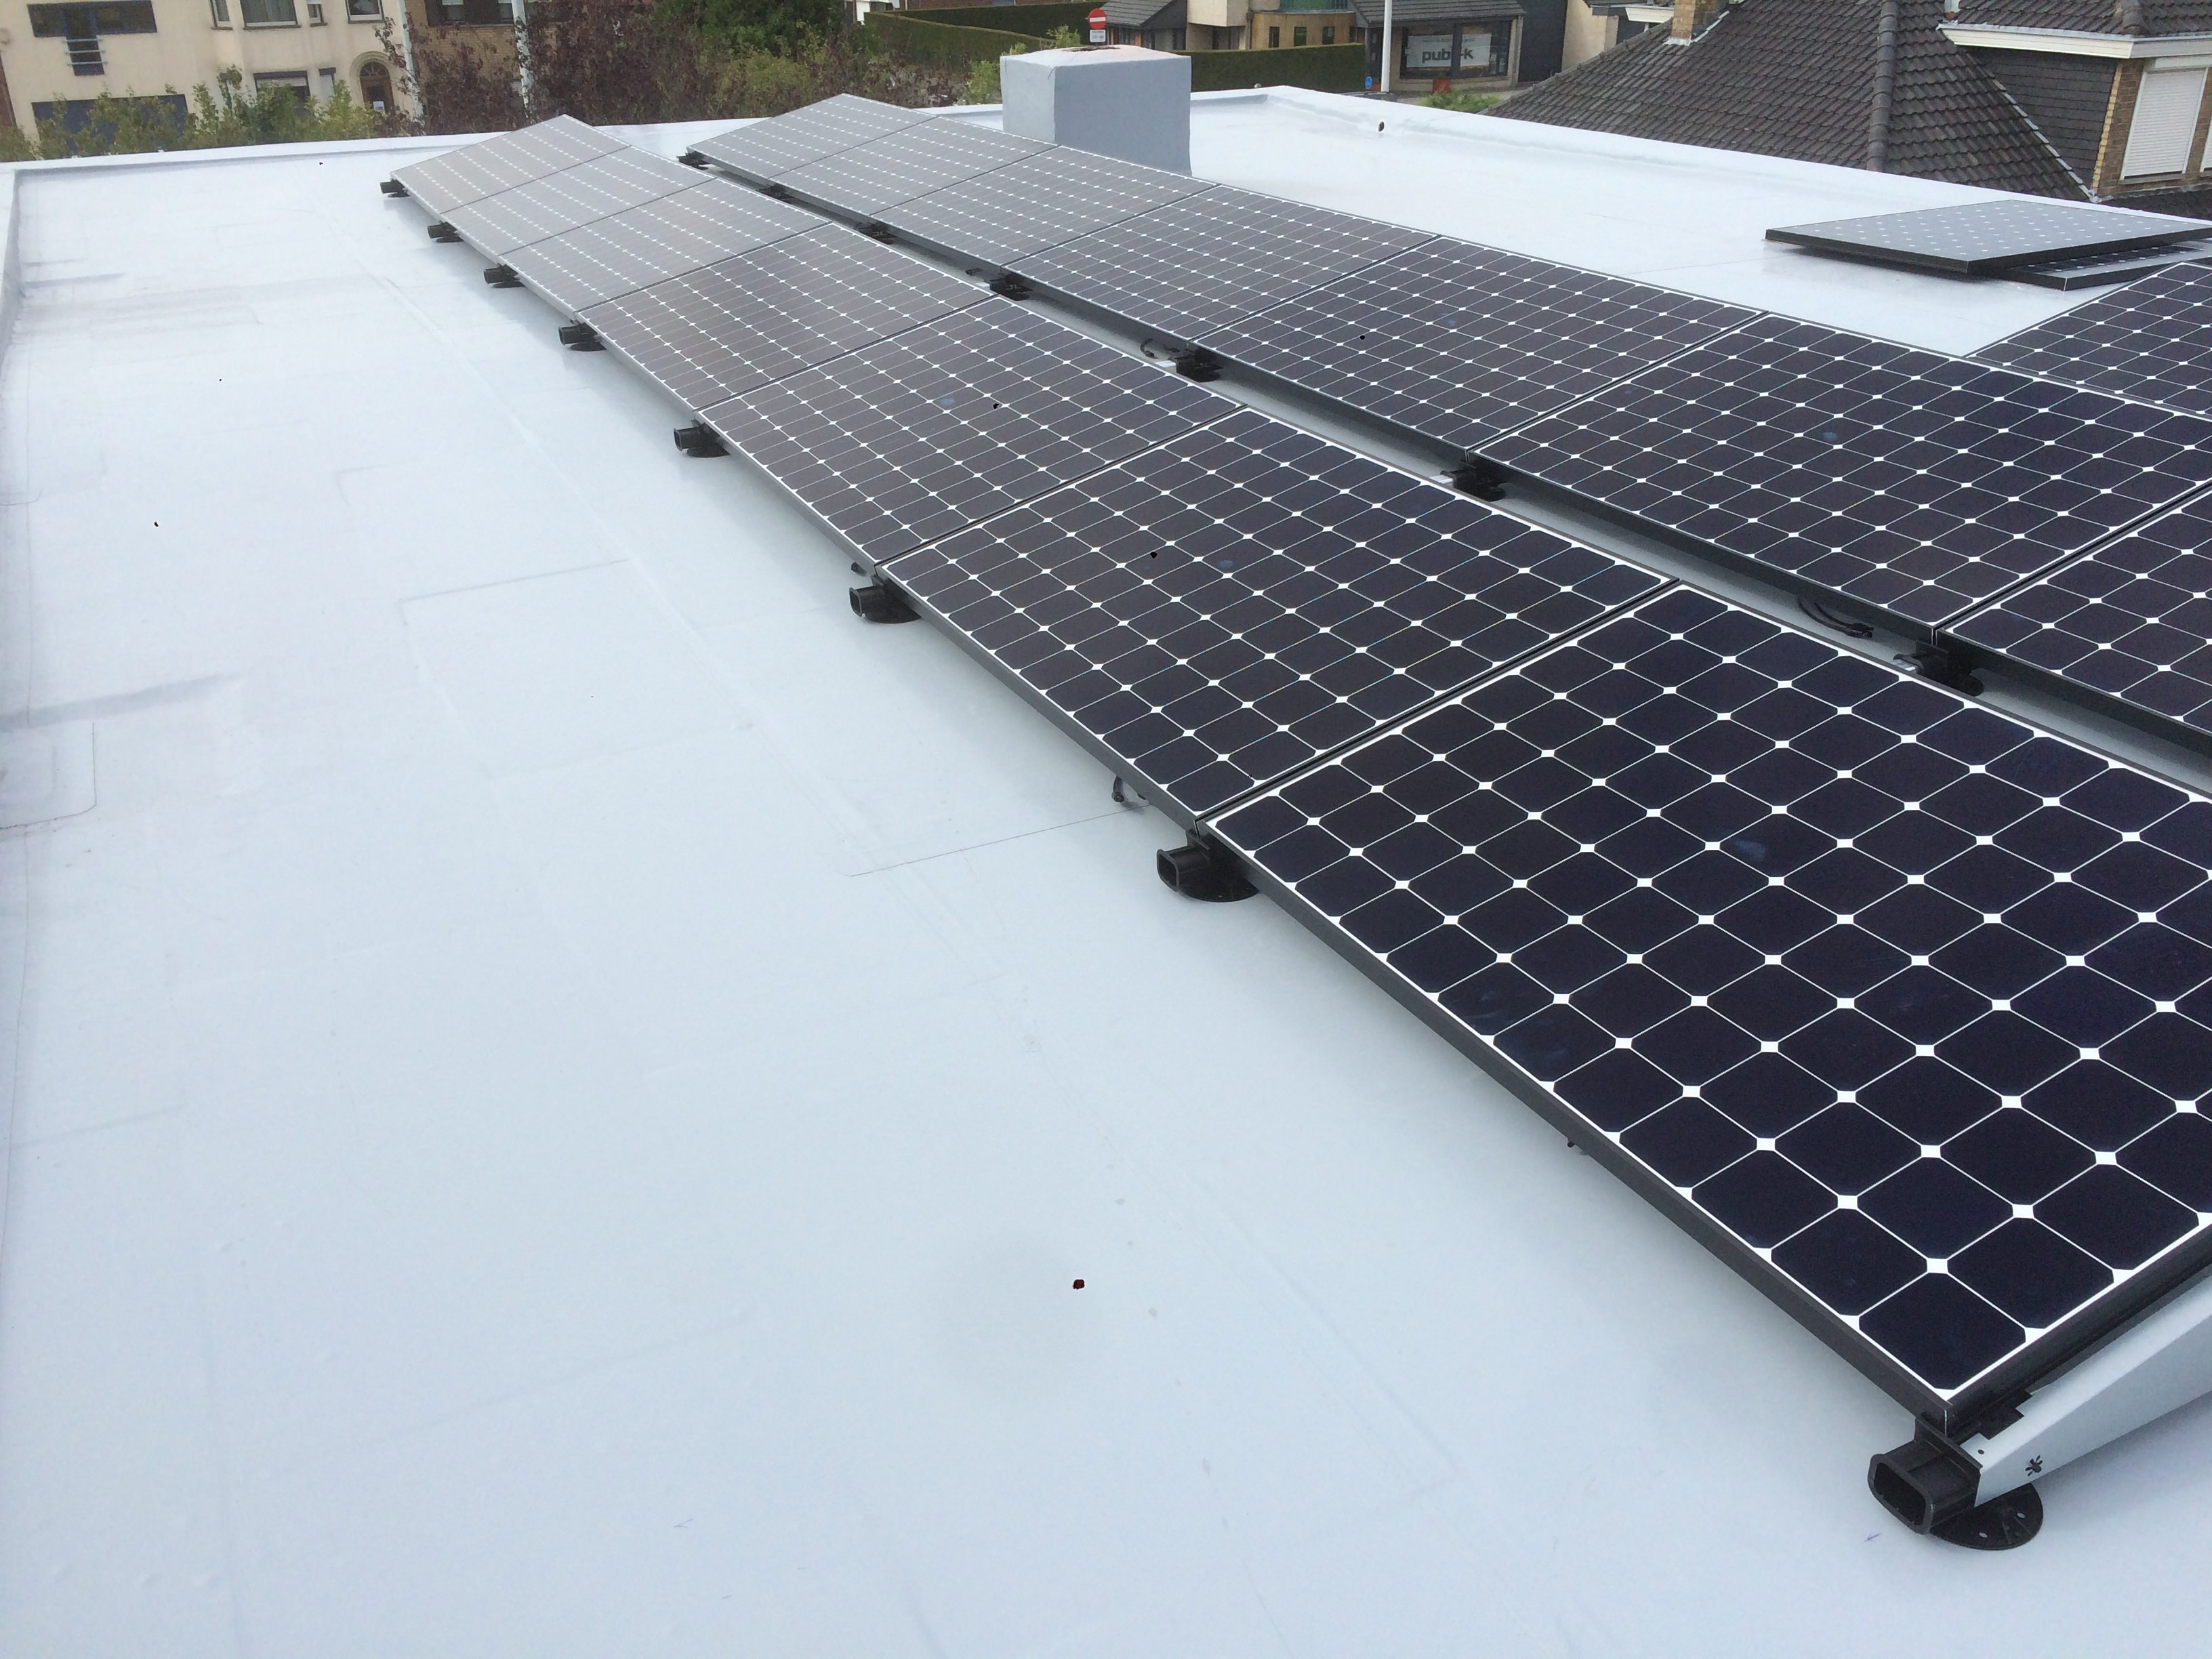 sunpower-panels-with-flatfix-low-ballast-system-2